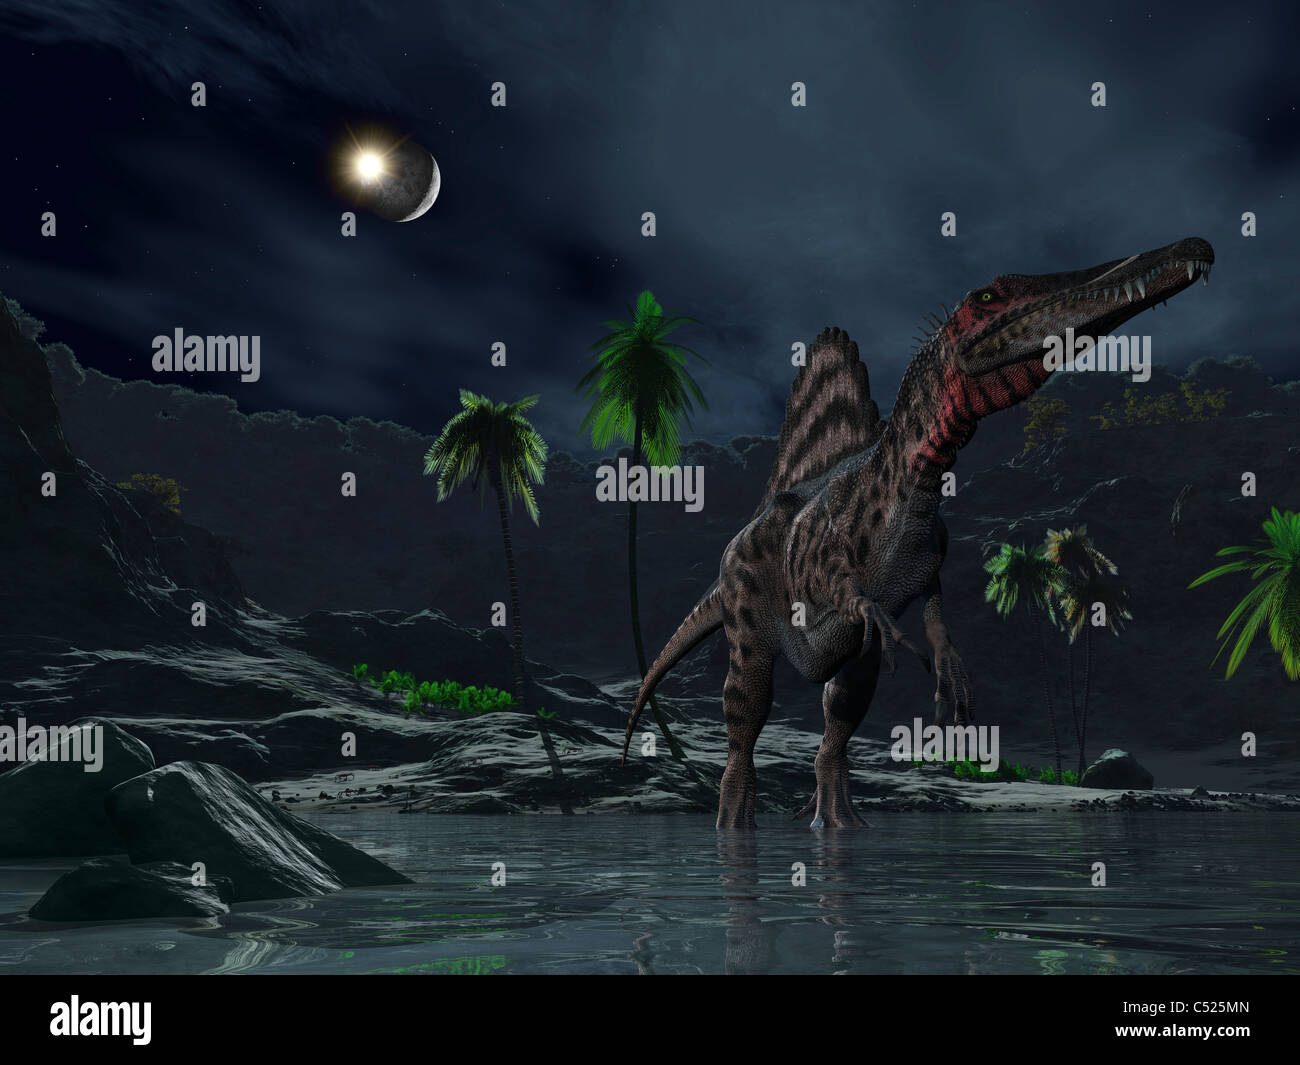 An asteroid impact on the moon while a Spinosaurus wanders in the foreground. - Stock Image